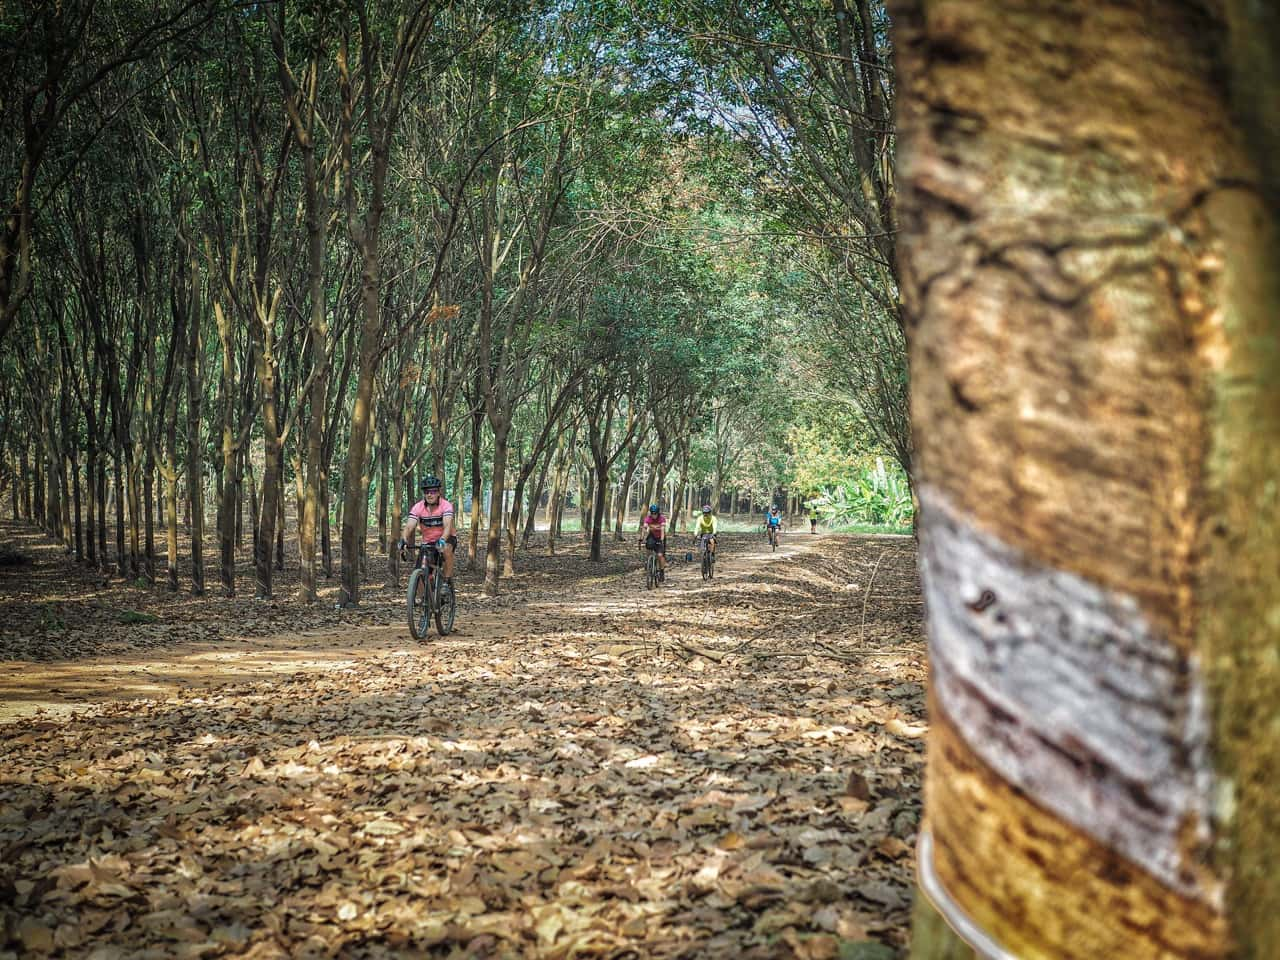 gravel bikes passing through rubber plantation during Thailand tour